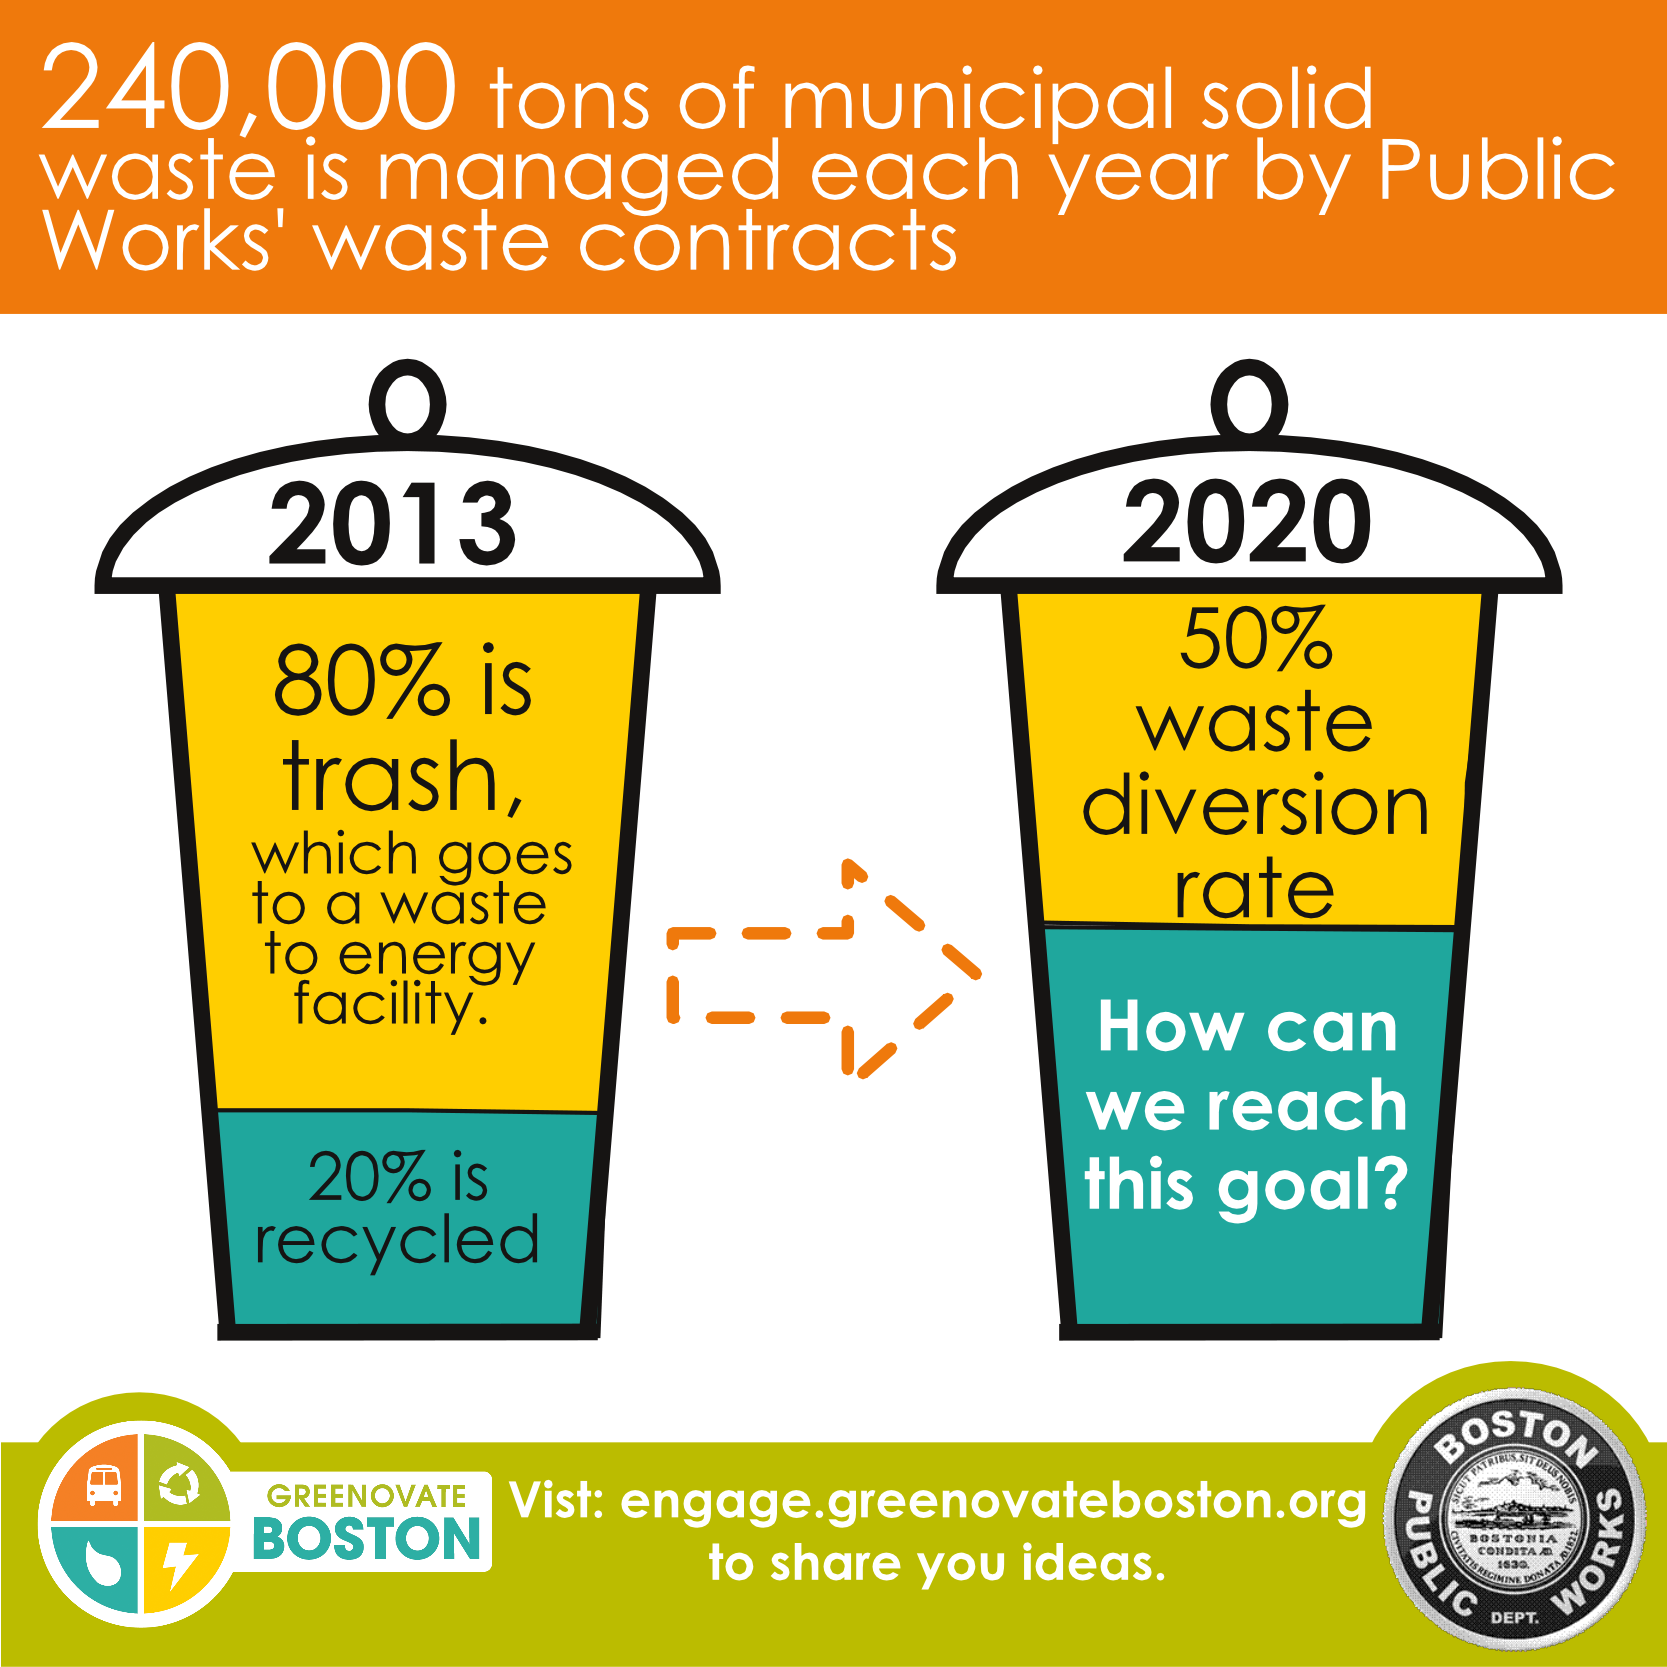 Meeting our waste diversion goal